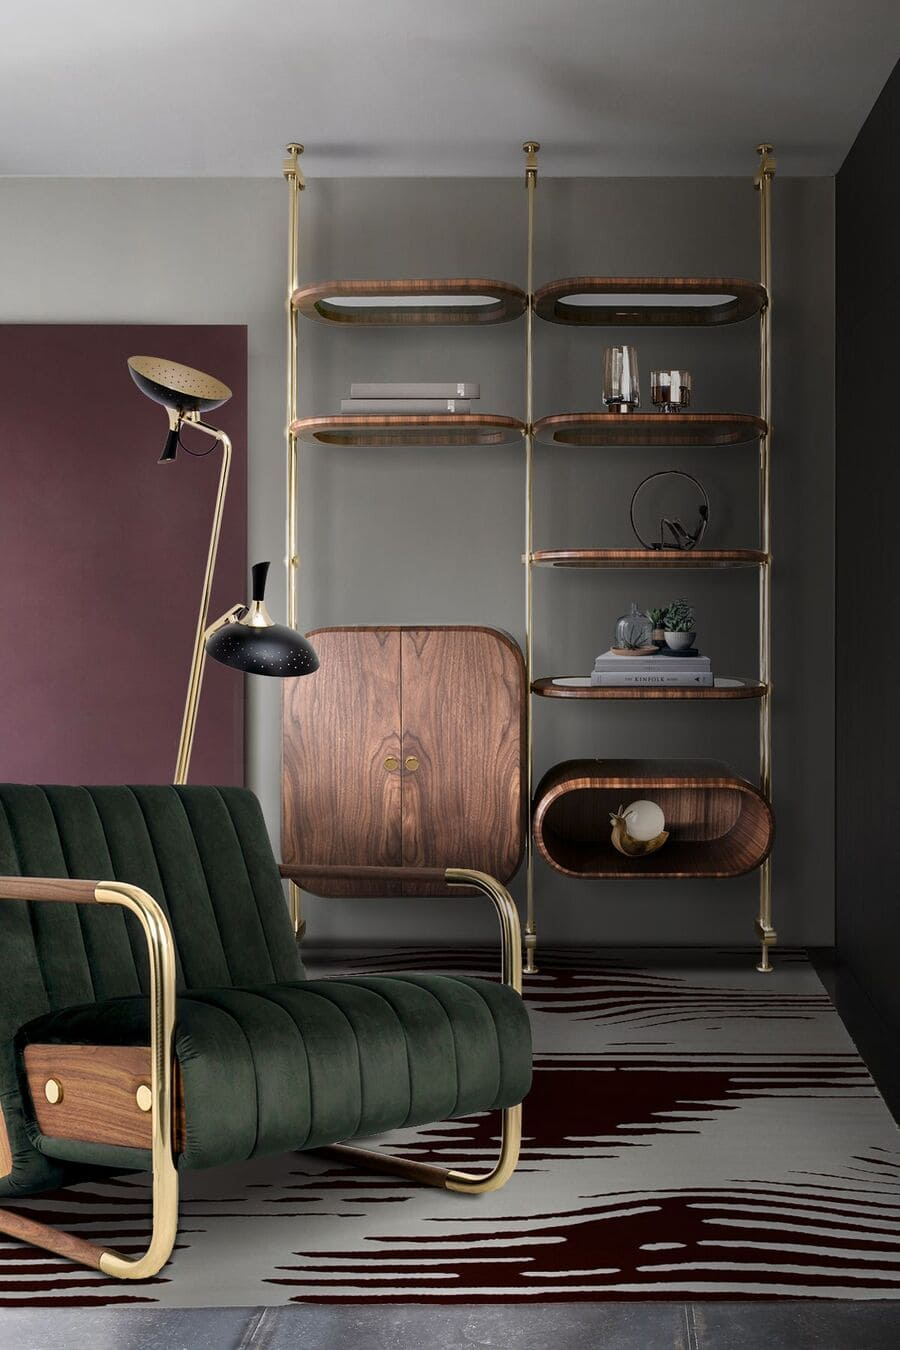 Minelli armchair is a timeless piece that proves mid-century design hasn't gone out of fashion.